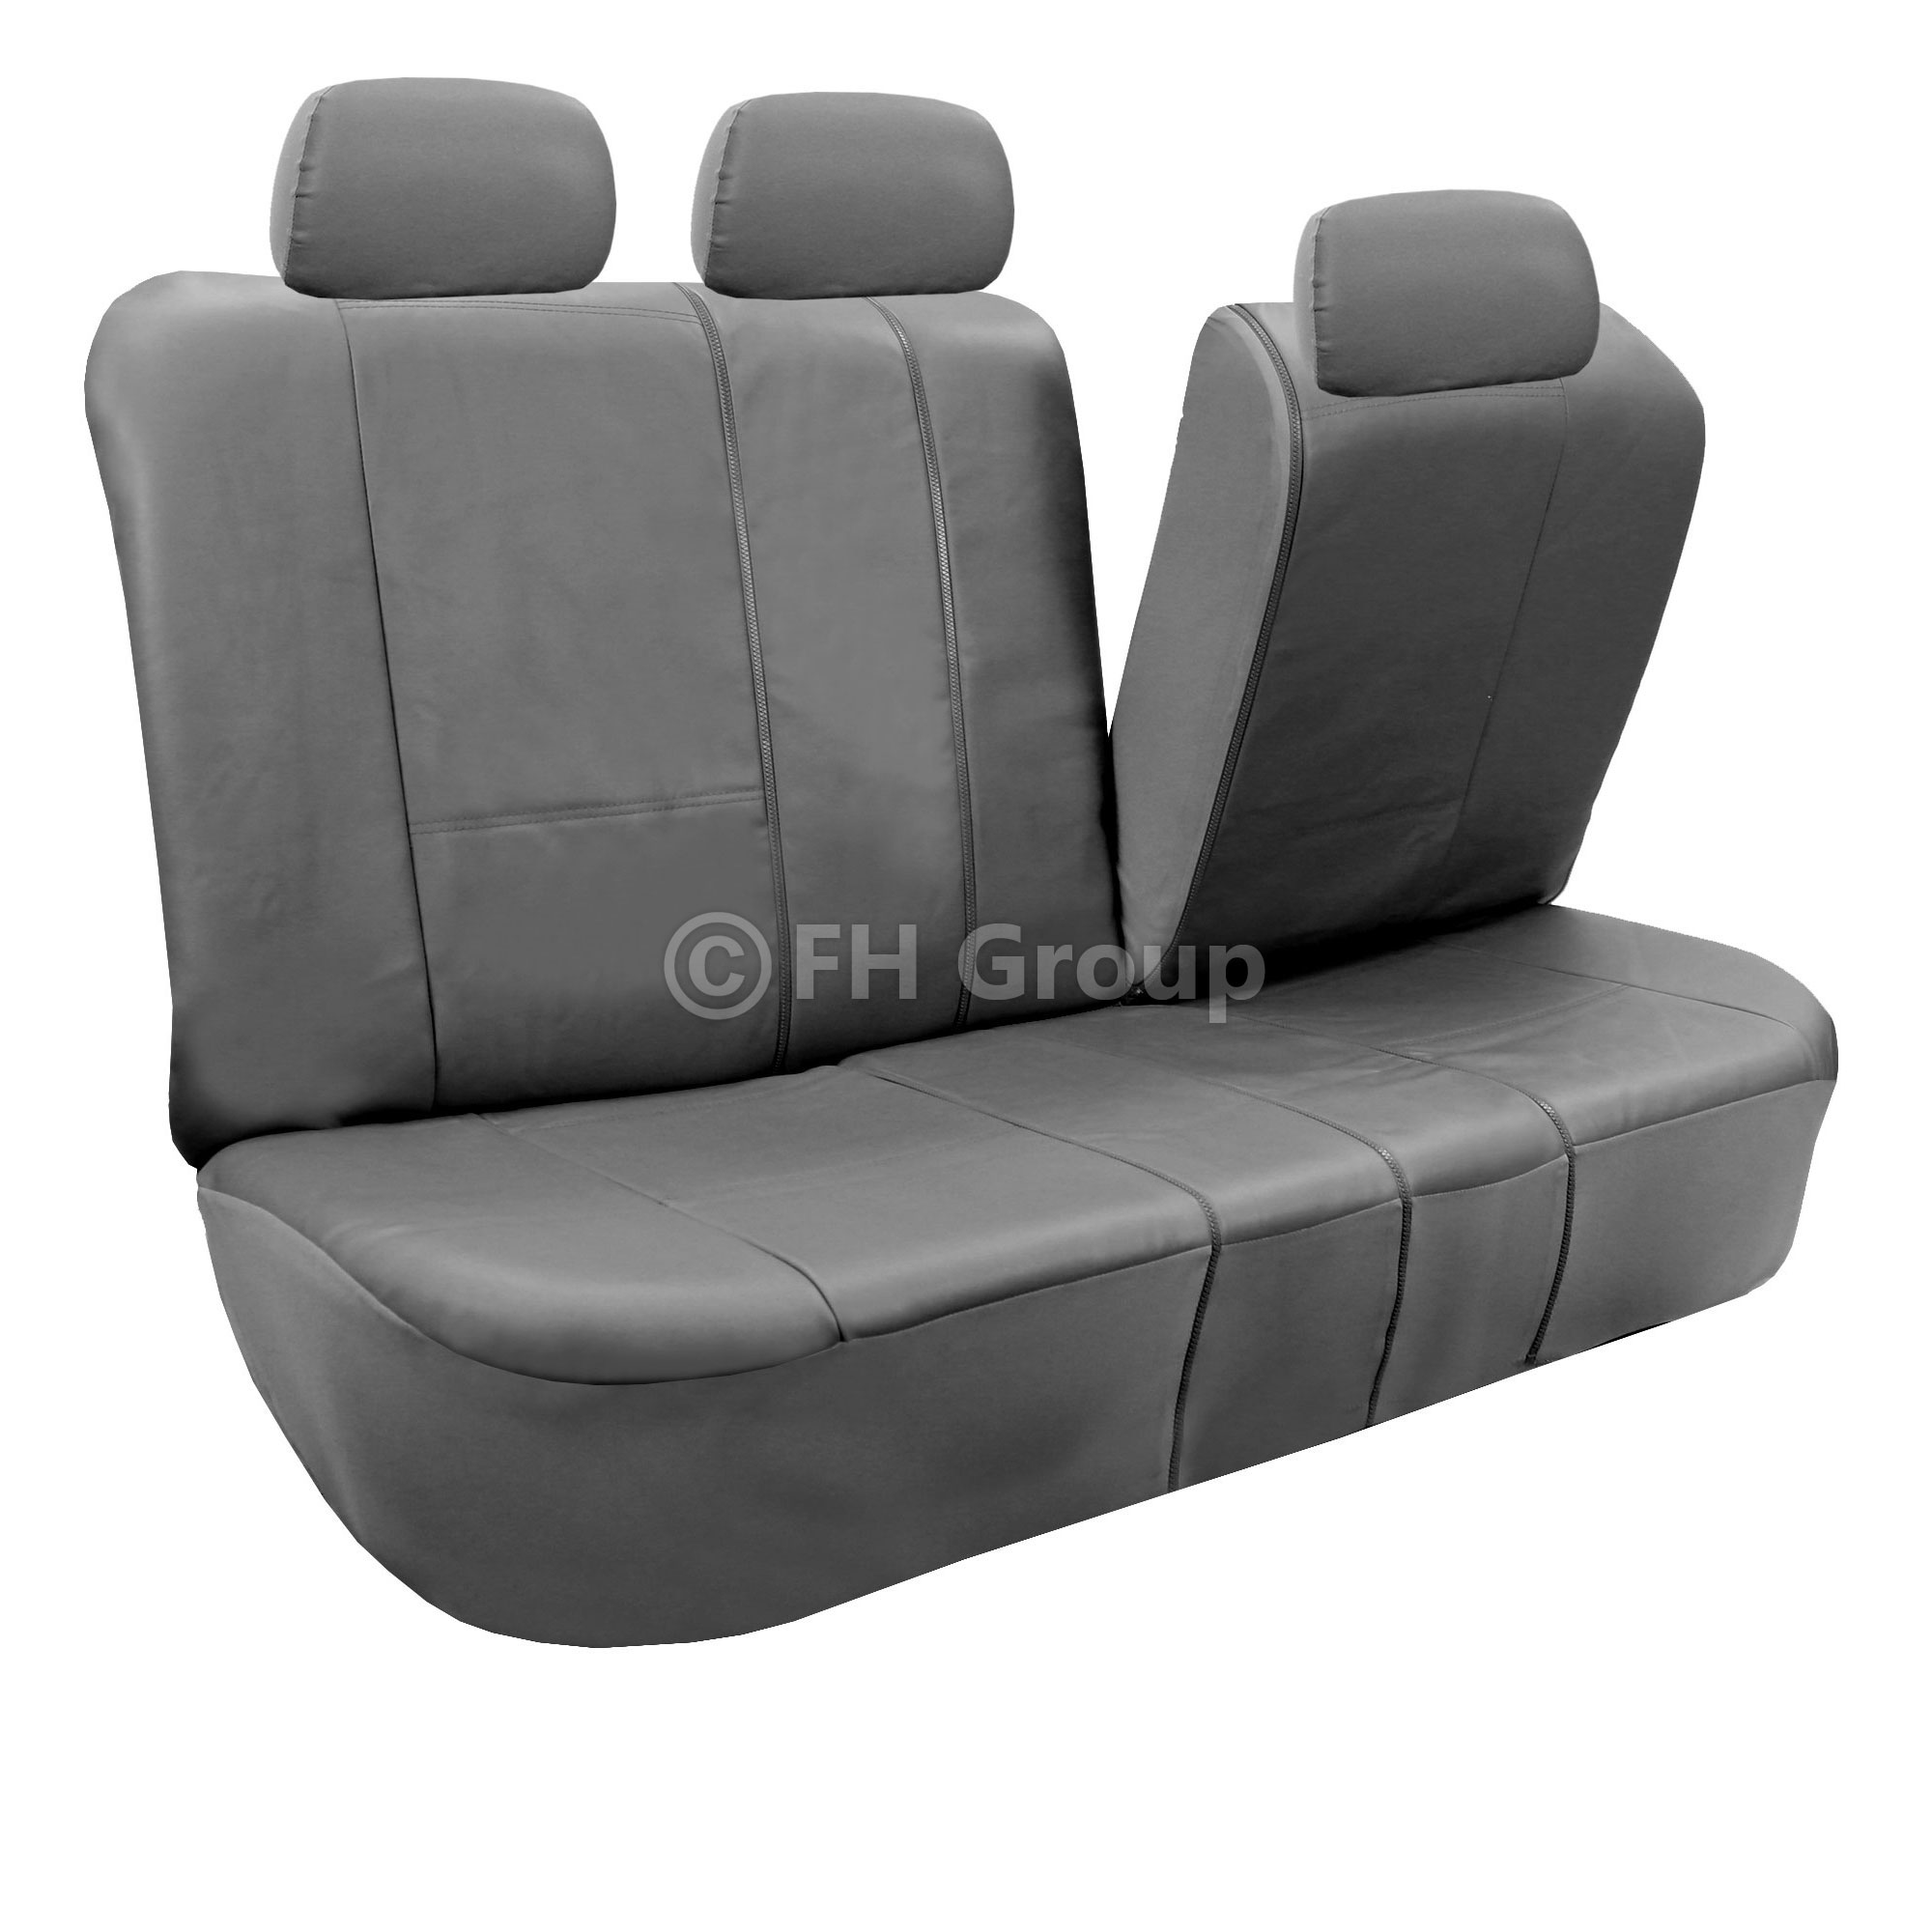 gray faux leather car seat cover set headrests floor mat set ebay. Black Bedroom Furniture Sets. Home Design Ideas